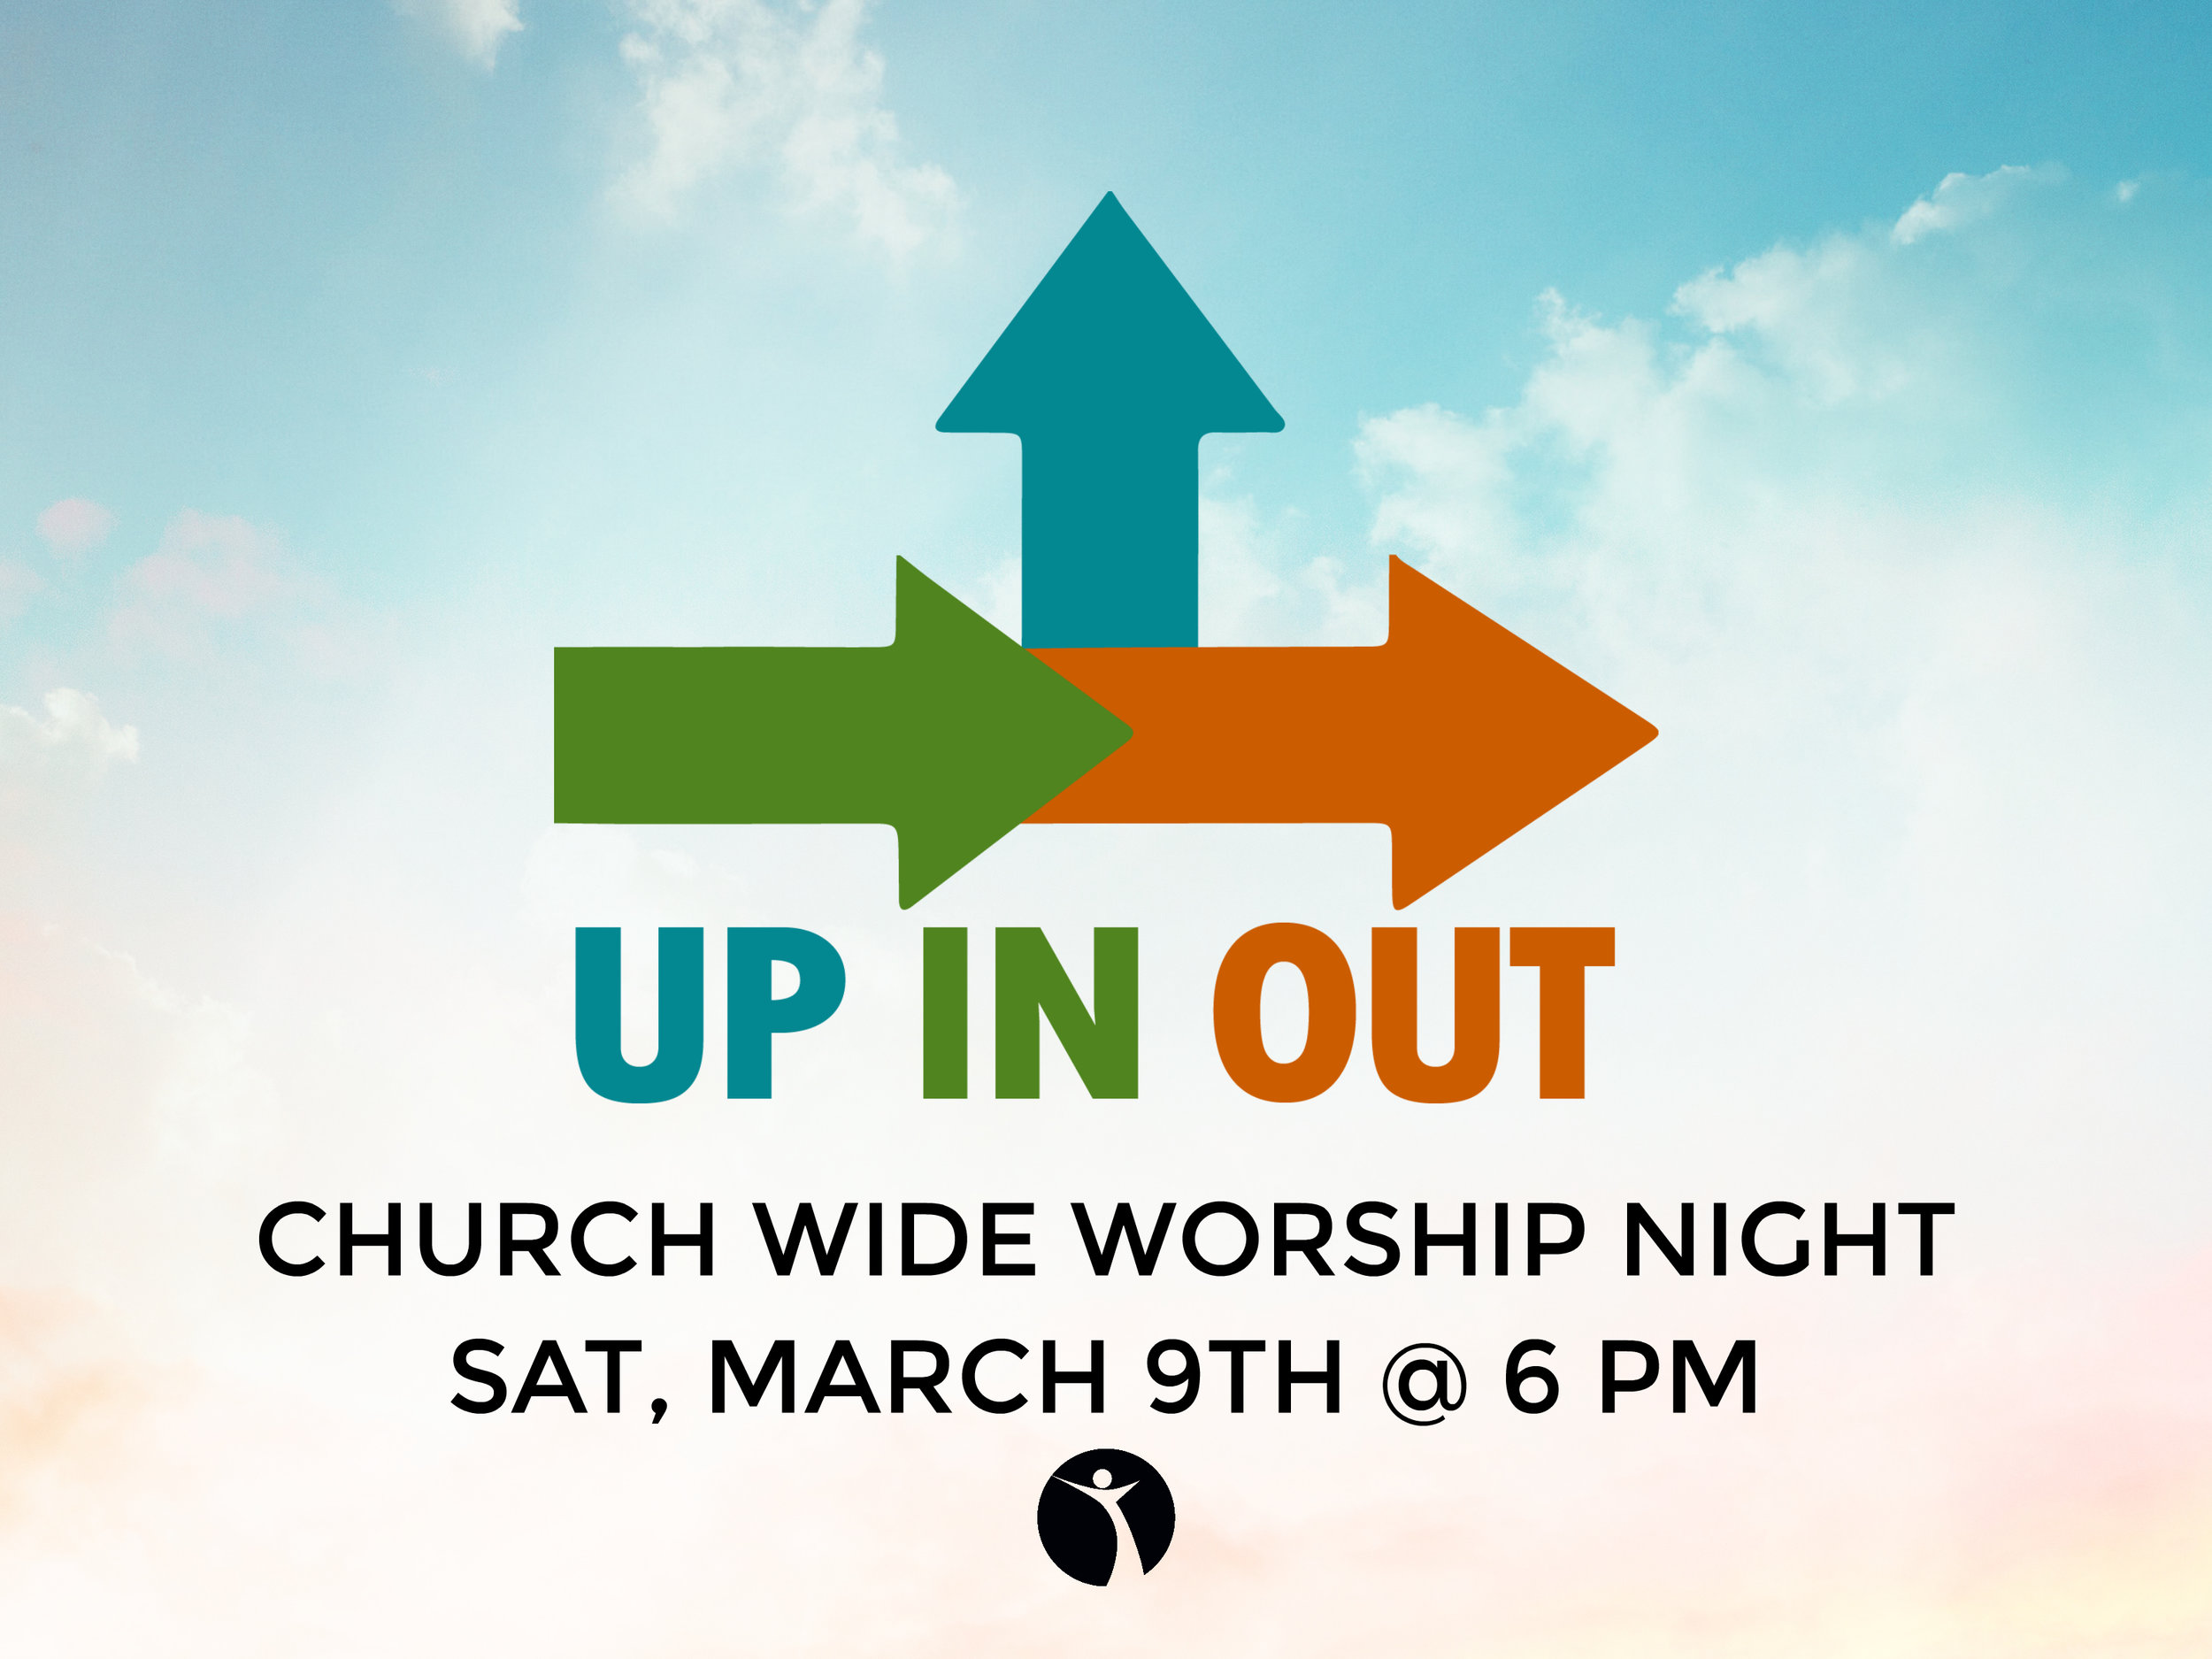 Join us for a night of Worship at the church building on 1509 W John. Saturday March 9th at 6pm.